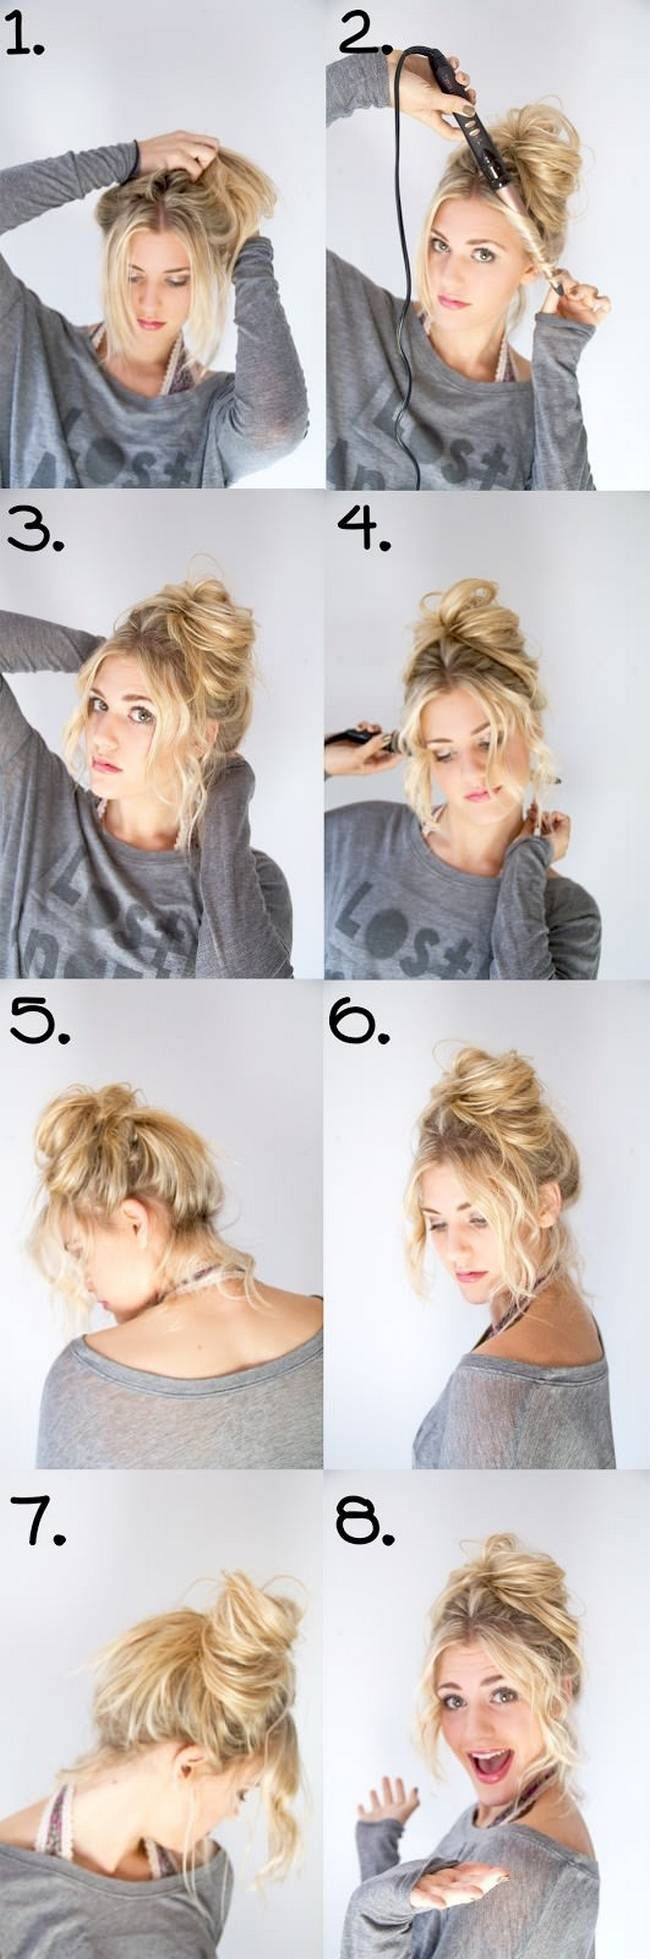 Pin by dianne wiege on hairmakeupfashionover pinterest